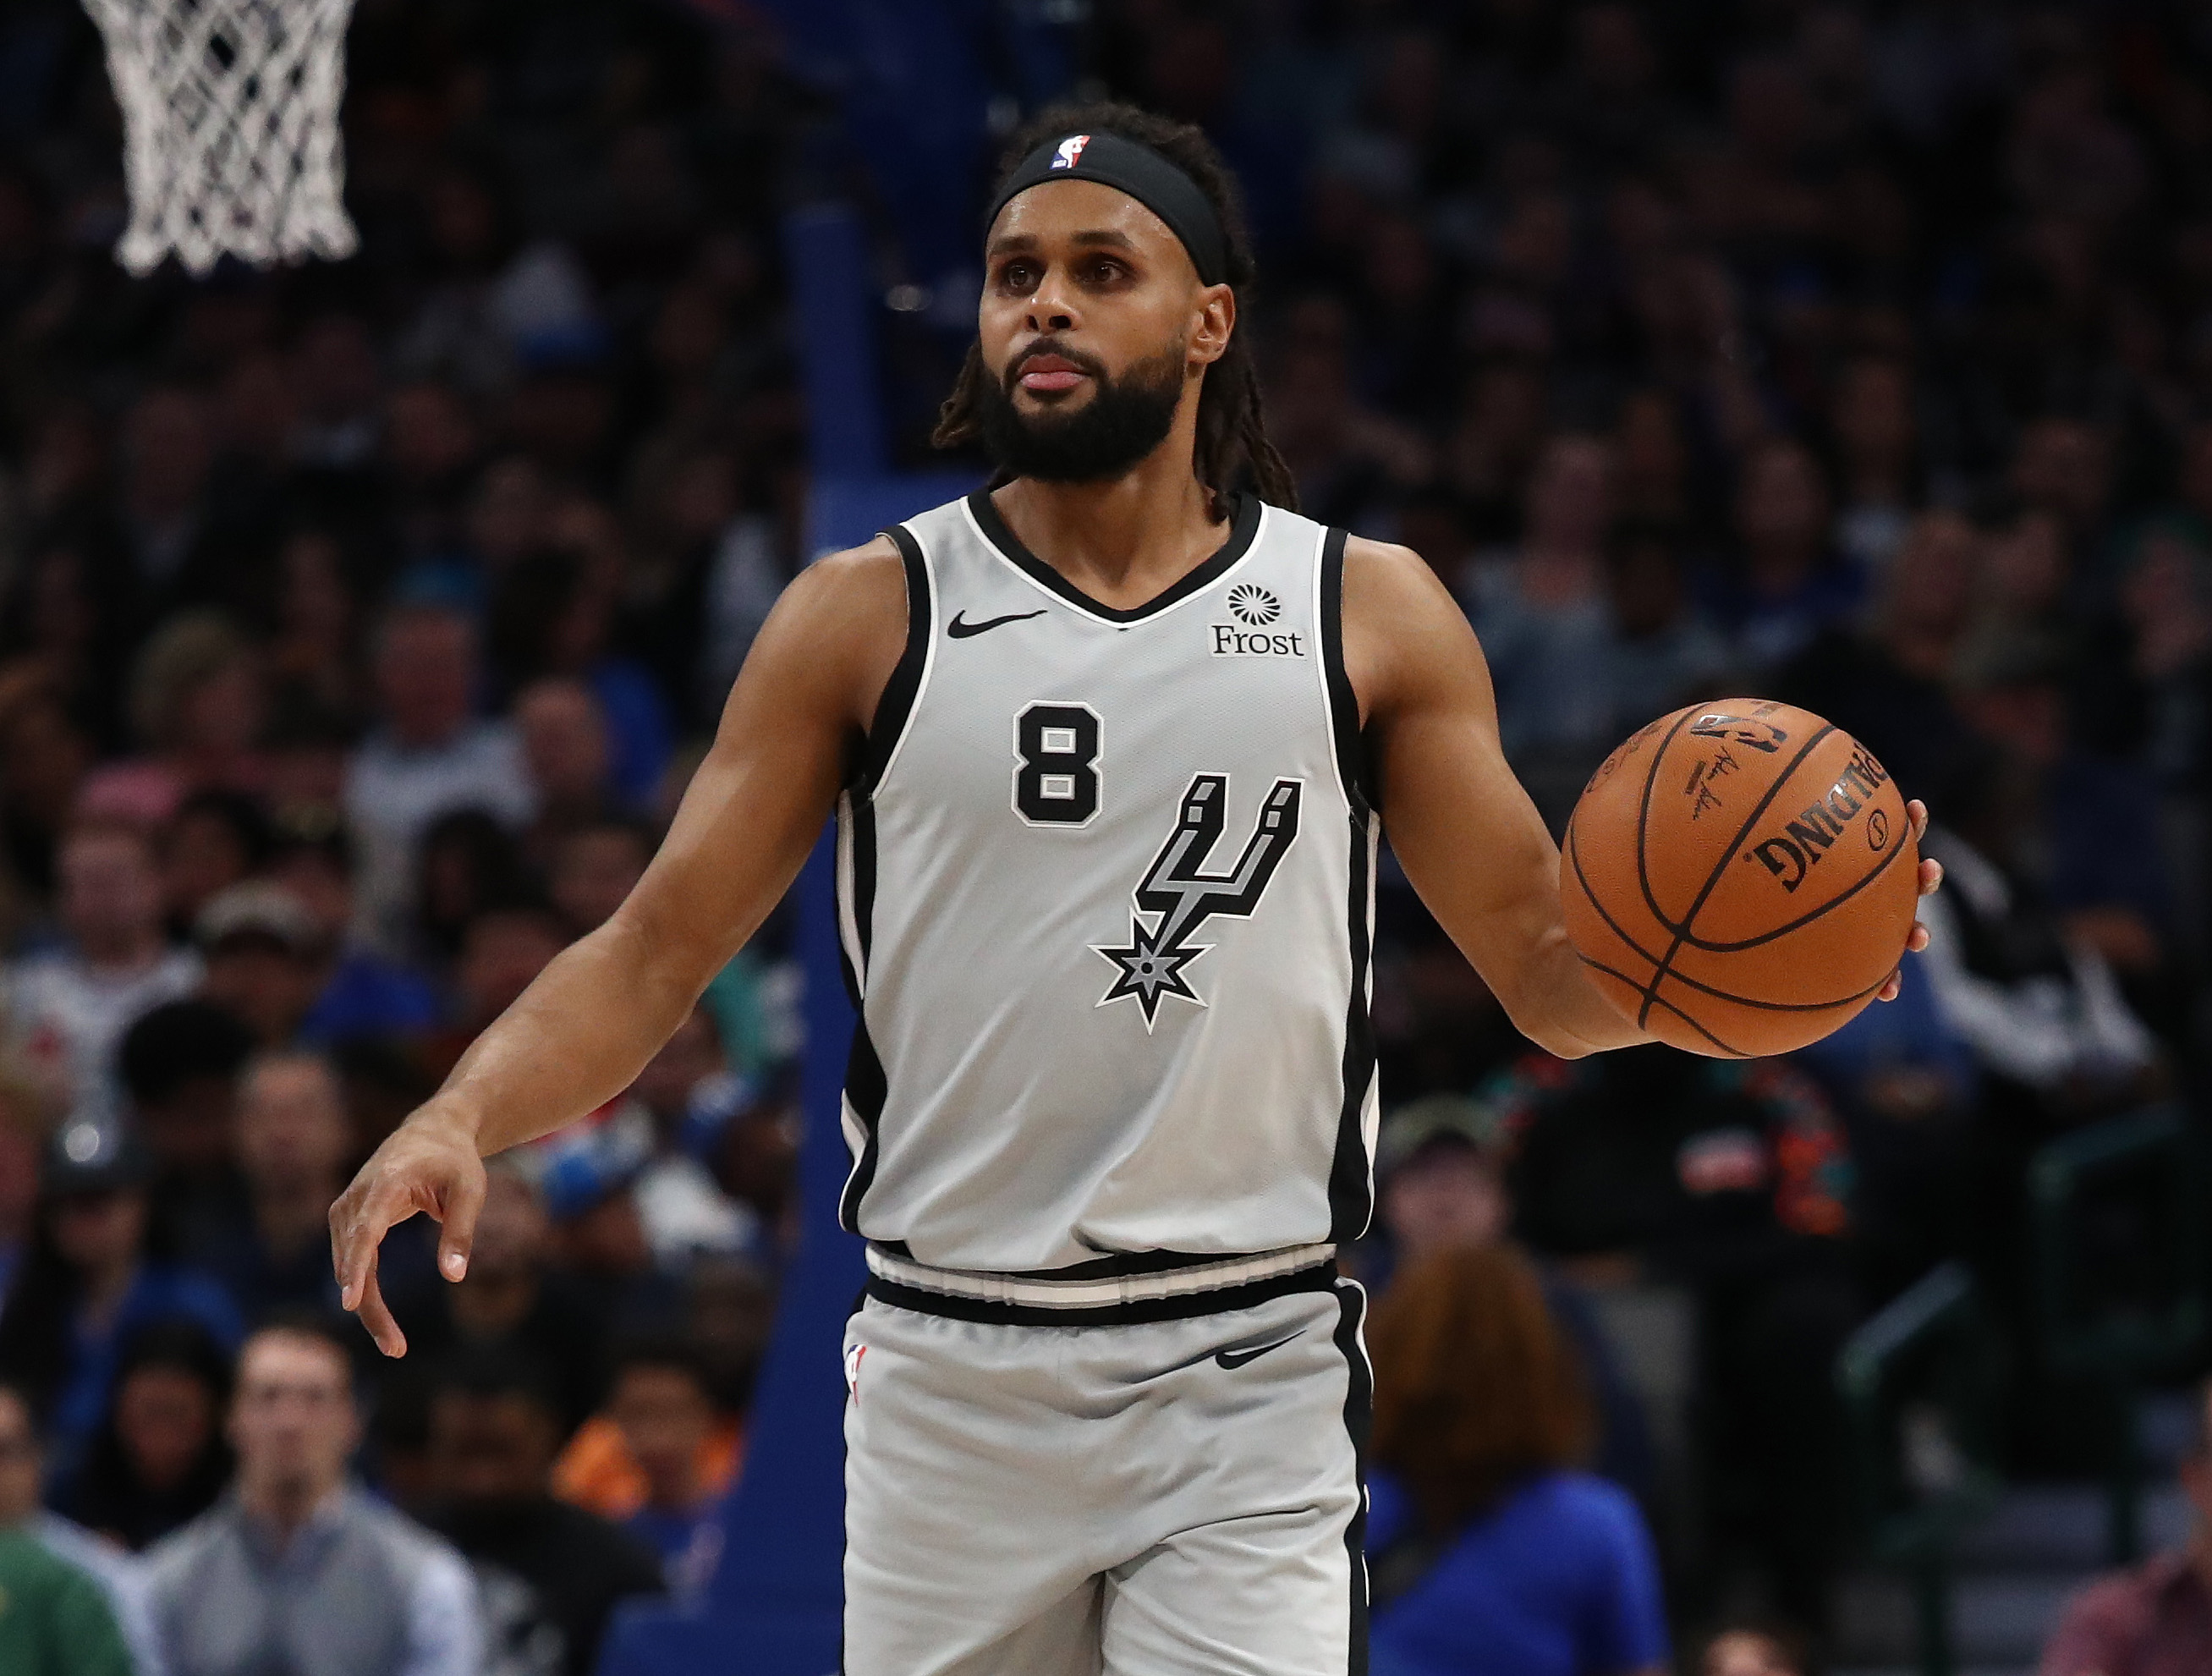 San Antonio Spurs' Patty Mills to donate $1 million NBA salary to Black Lives Matter charities after season restart